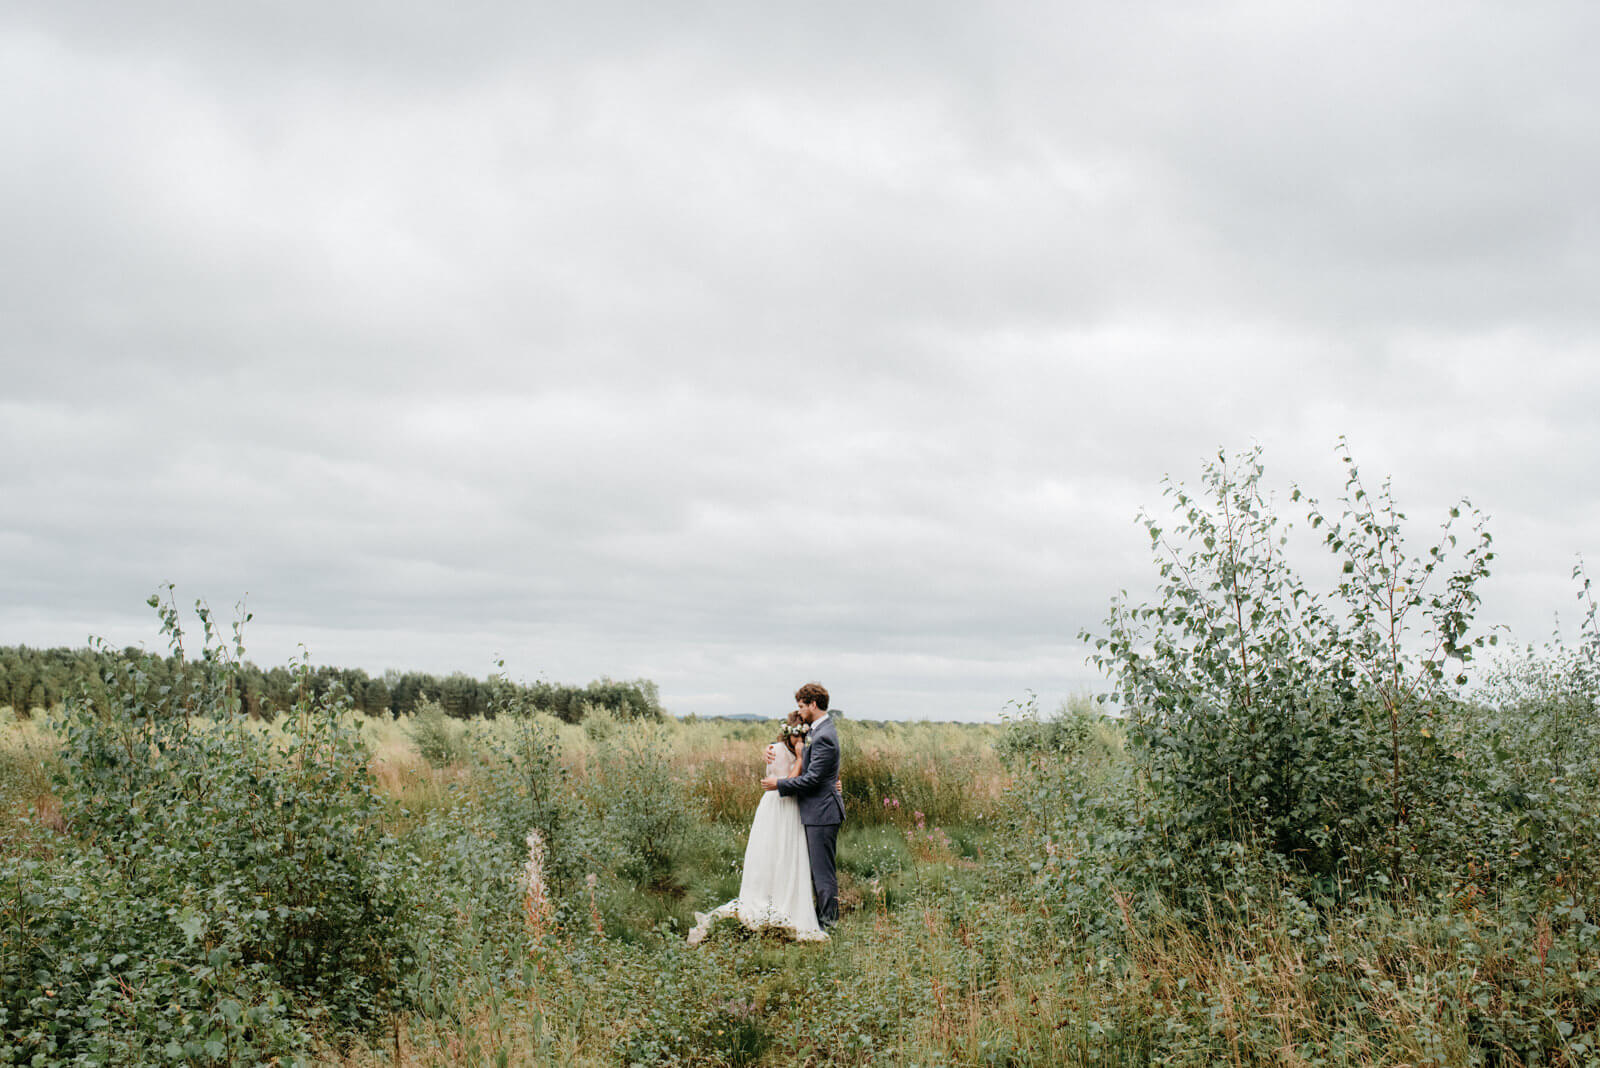 relaxed portrait of boho bride and groom in Fenn's, Whixall and Bettisfield Mosses National Nature Reserve at festival wedding